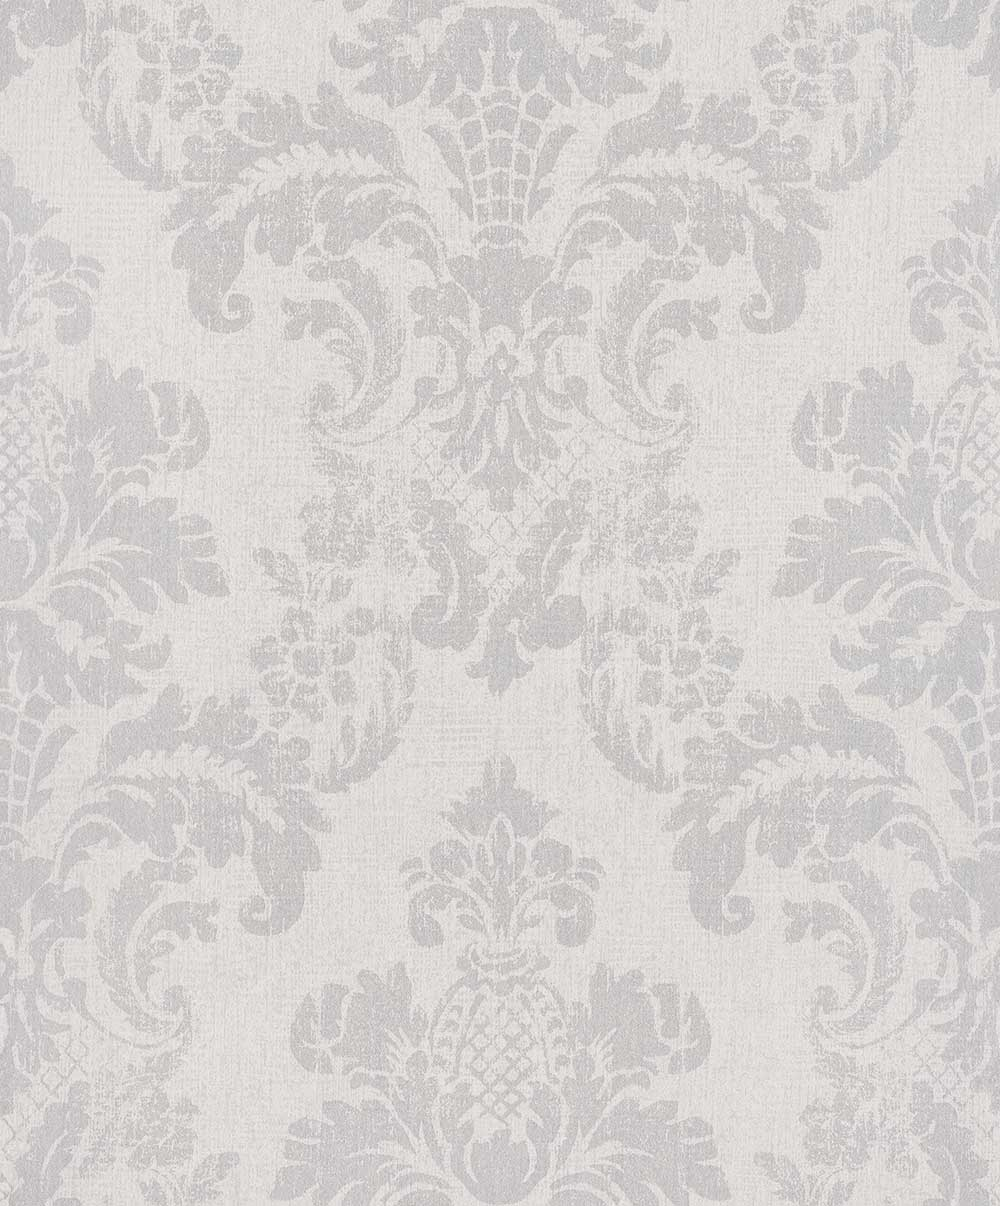 Albany Distressed Damask Silver / Cream Wallpaper - Product code: 200257